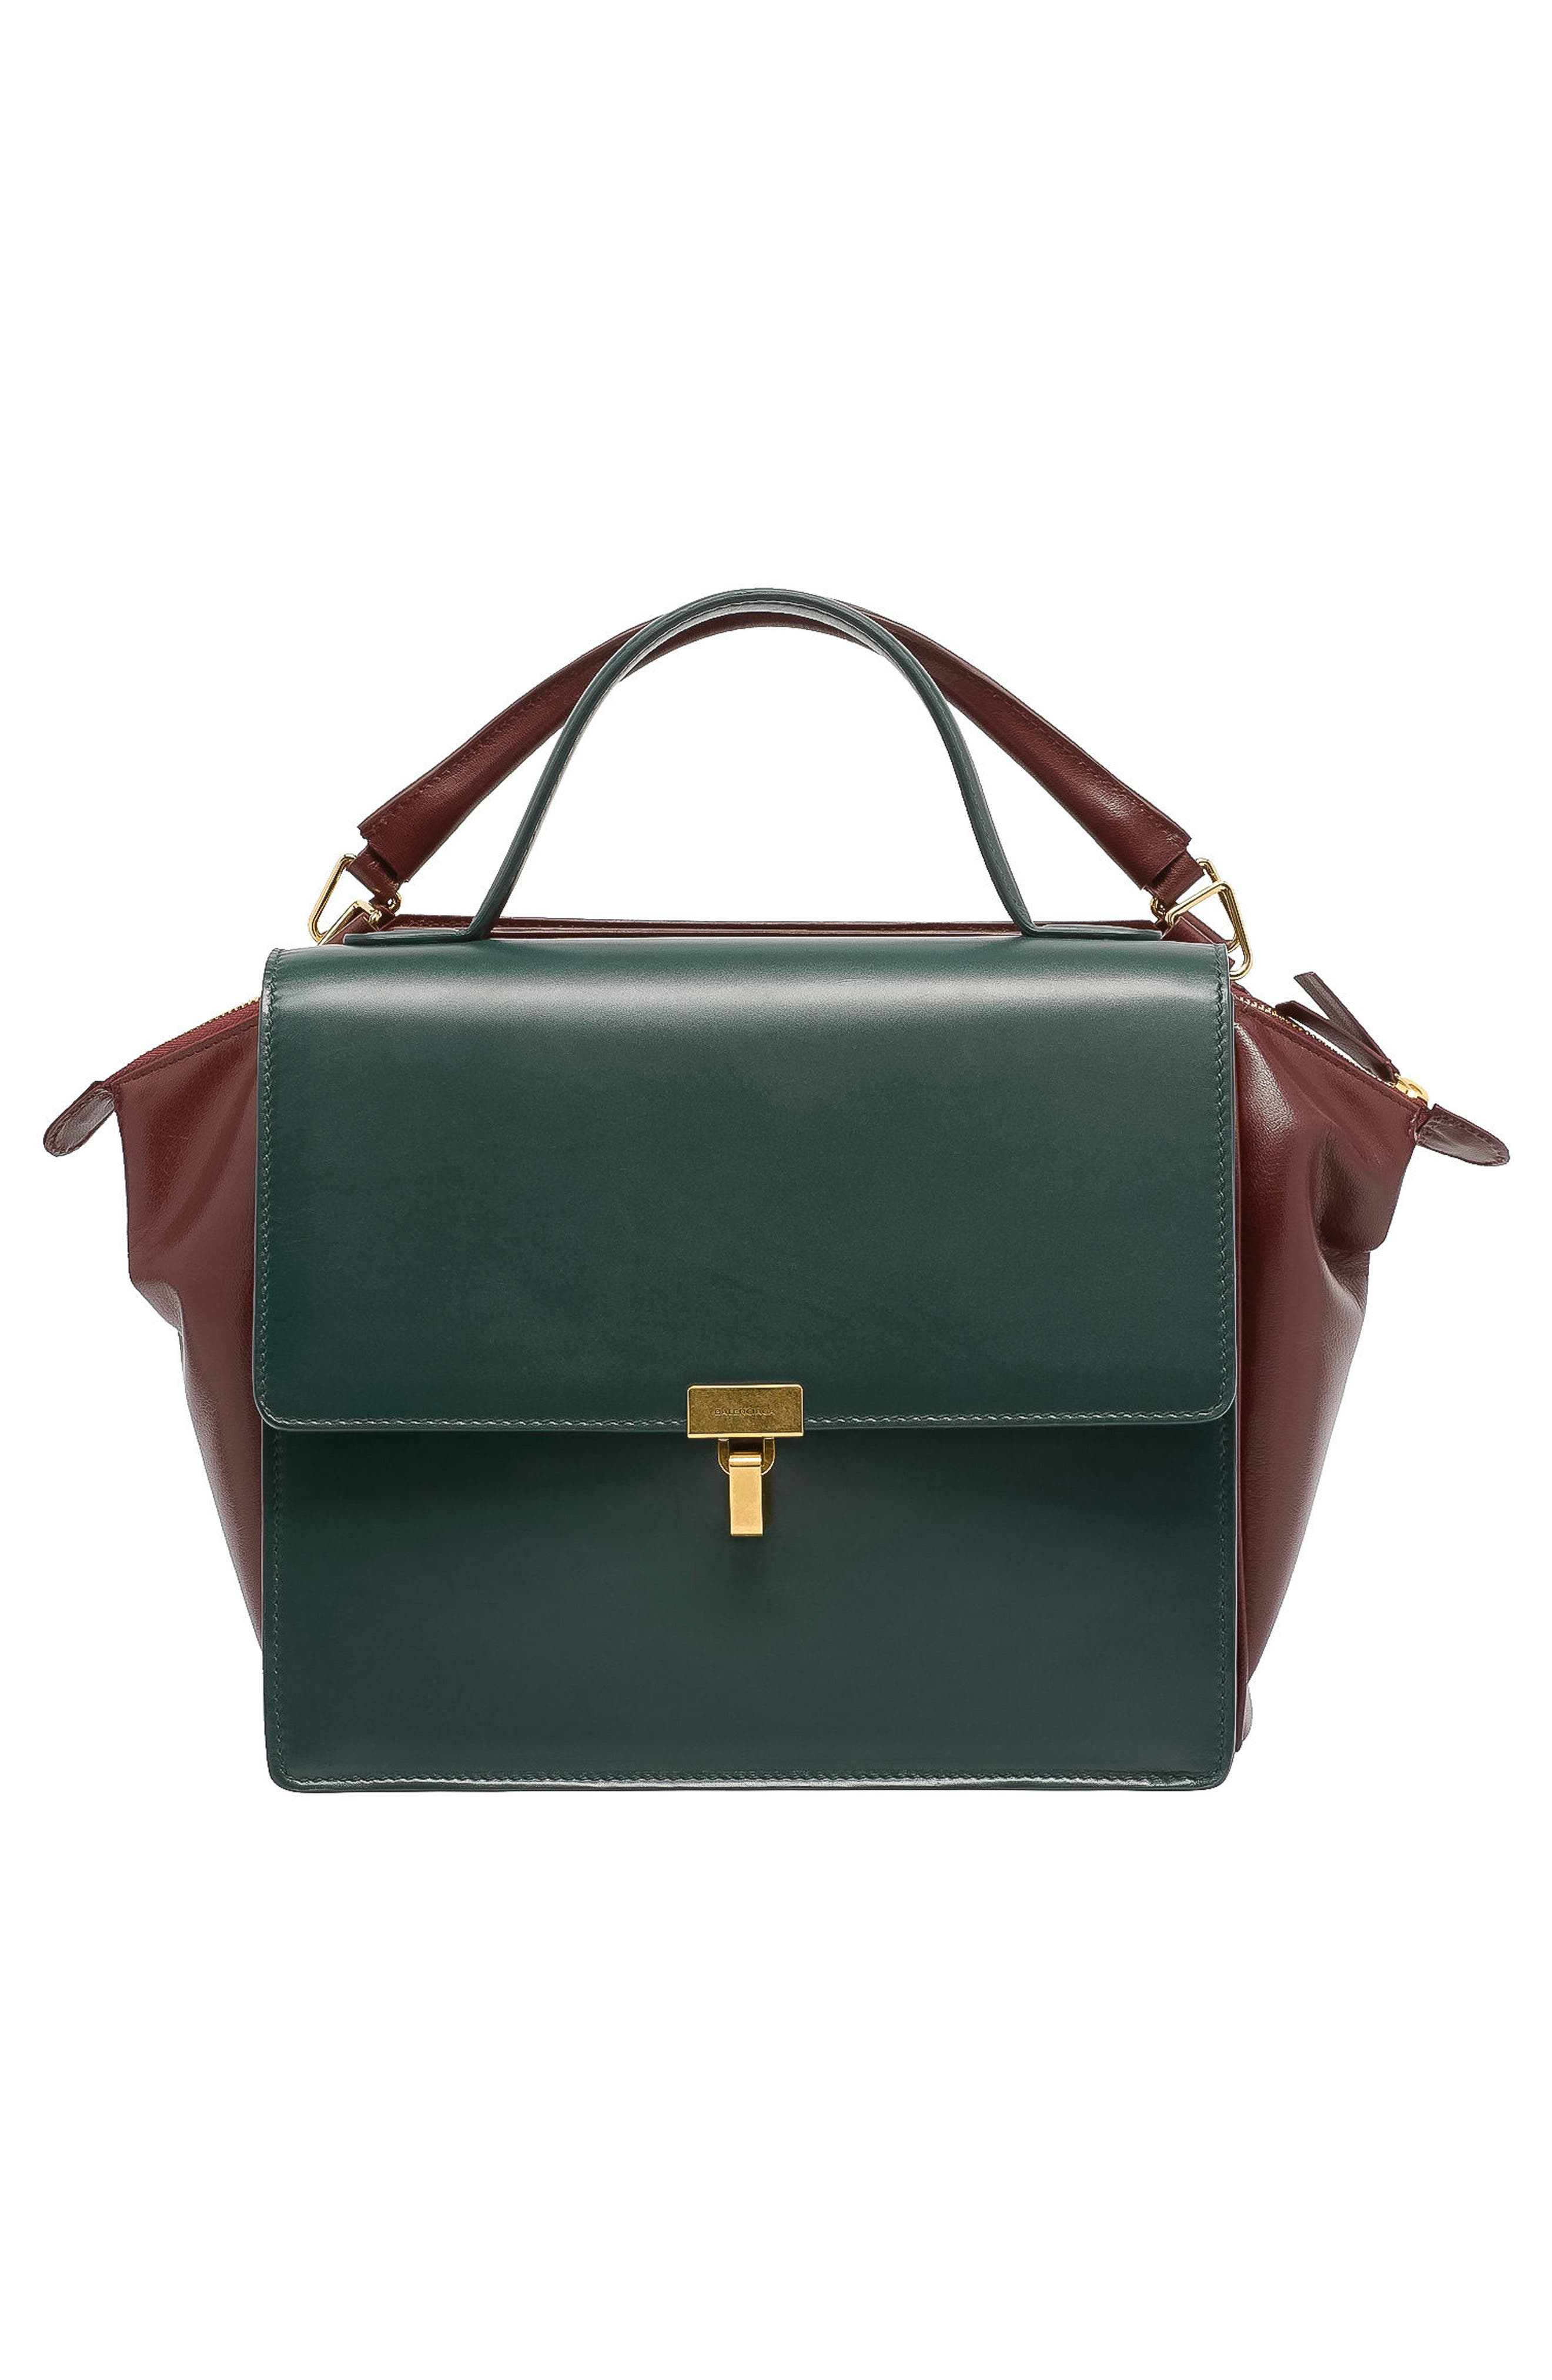 Collage Double Calfskin Leather Bag,                             Alternate thumbnail 2, color,                             641